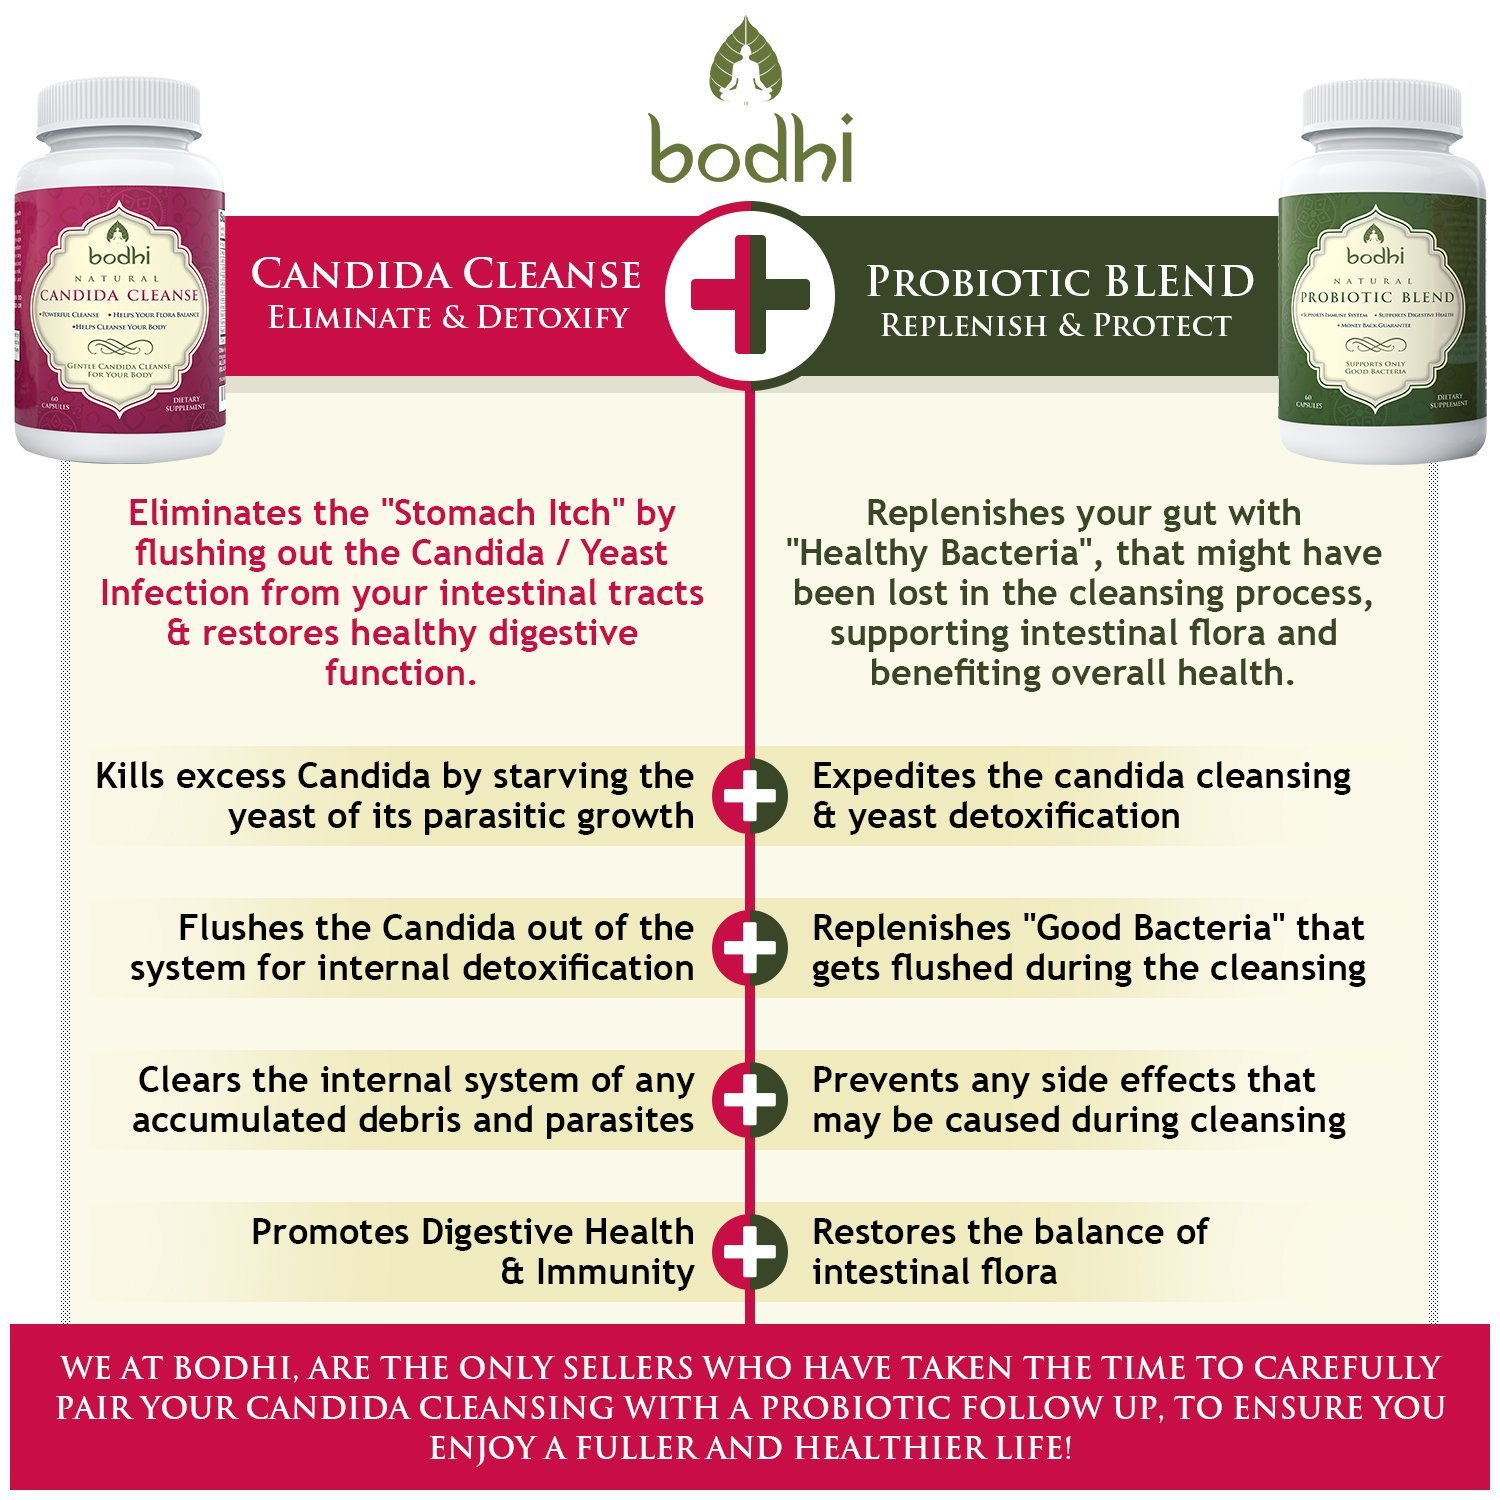 Candida probiotic herbal store buy - Amazon Com Bodhi Natural Candida Cleanse And Probiotic Blend Supplement 60 Capsules Health Personal Care